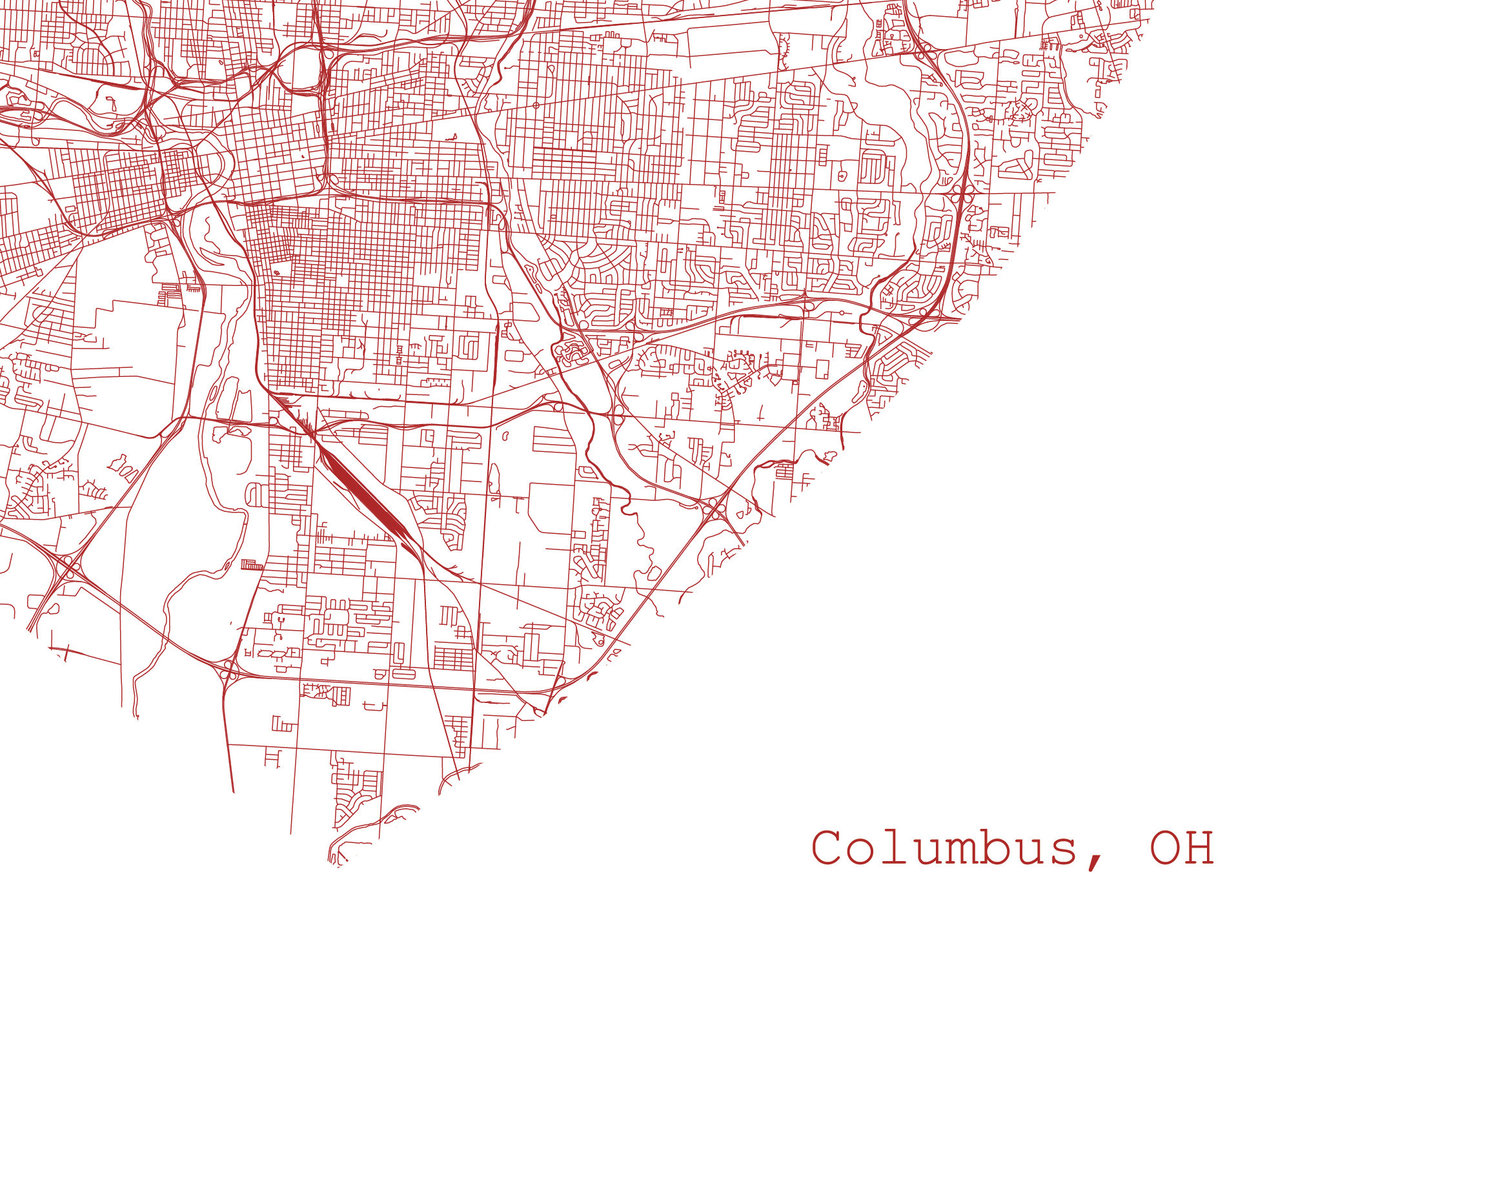 Columbus Ohio City Map - Art Print — TIM + APRIL on printable map nc, aerial view of columbus, printable map ky, printable map wv, printable map texas, google map of columbus, topographical map of columbus, printable map kansas, printable honolulu map, printable map nj, printable map georgia, printable dallas map, printable new orleans map, castle of columbus, printable map ohio,